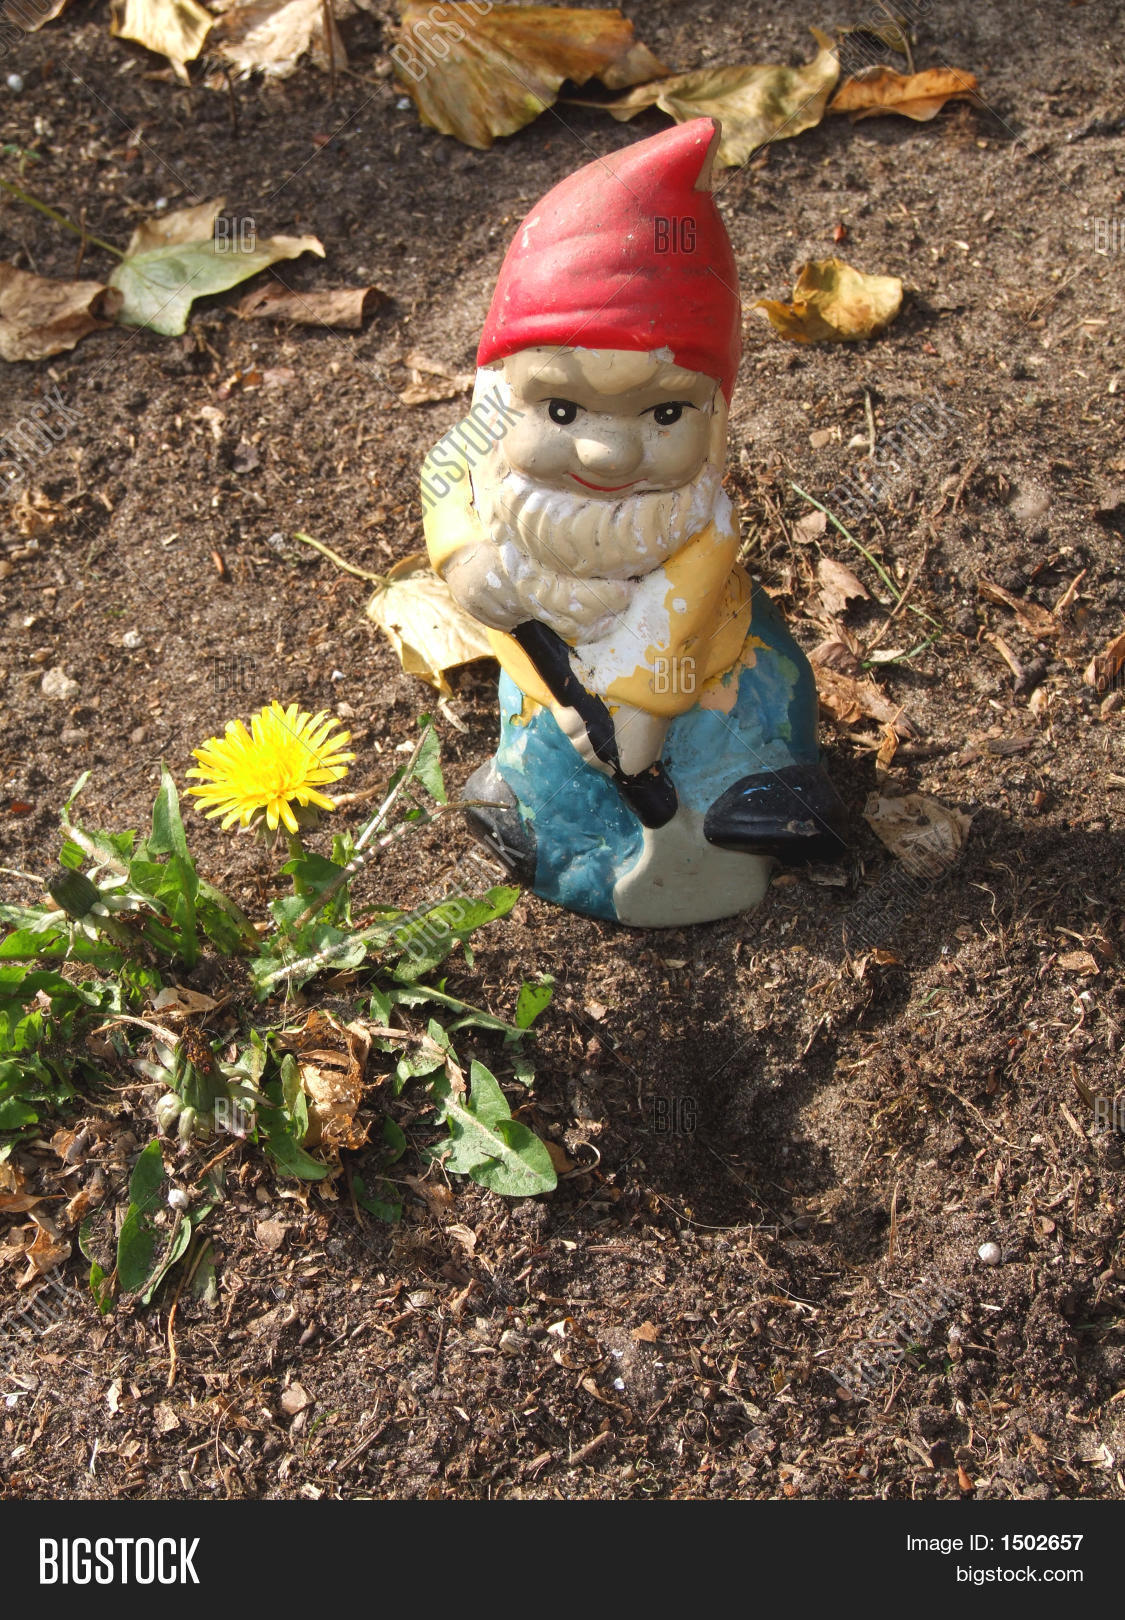 Happy Gnome Garden 3 Image & Photo (Free Trial) | Bigstock